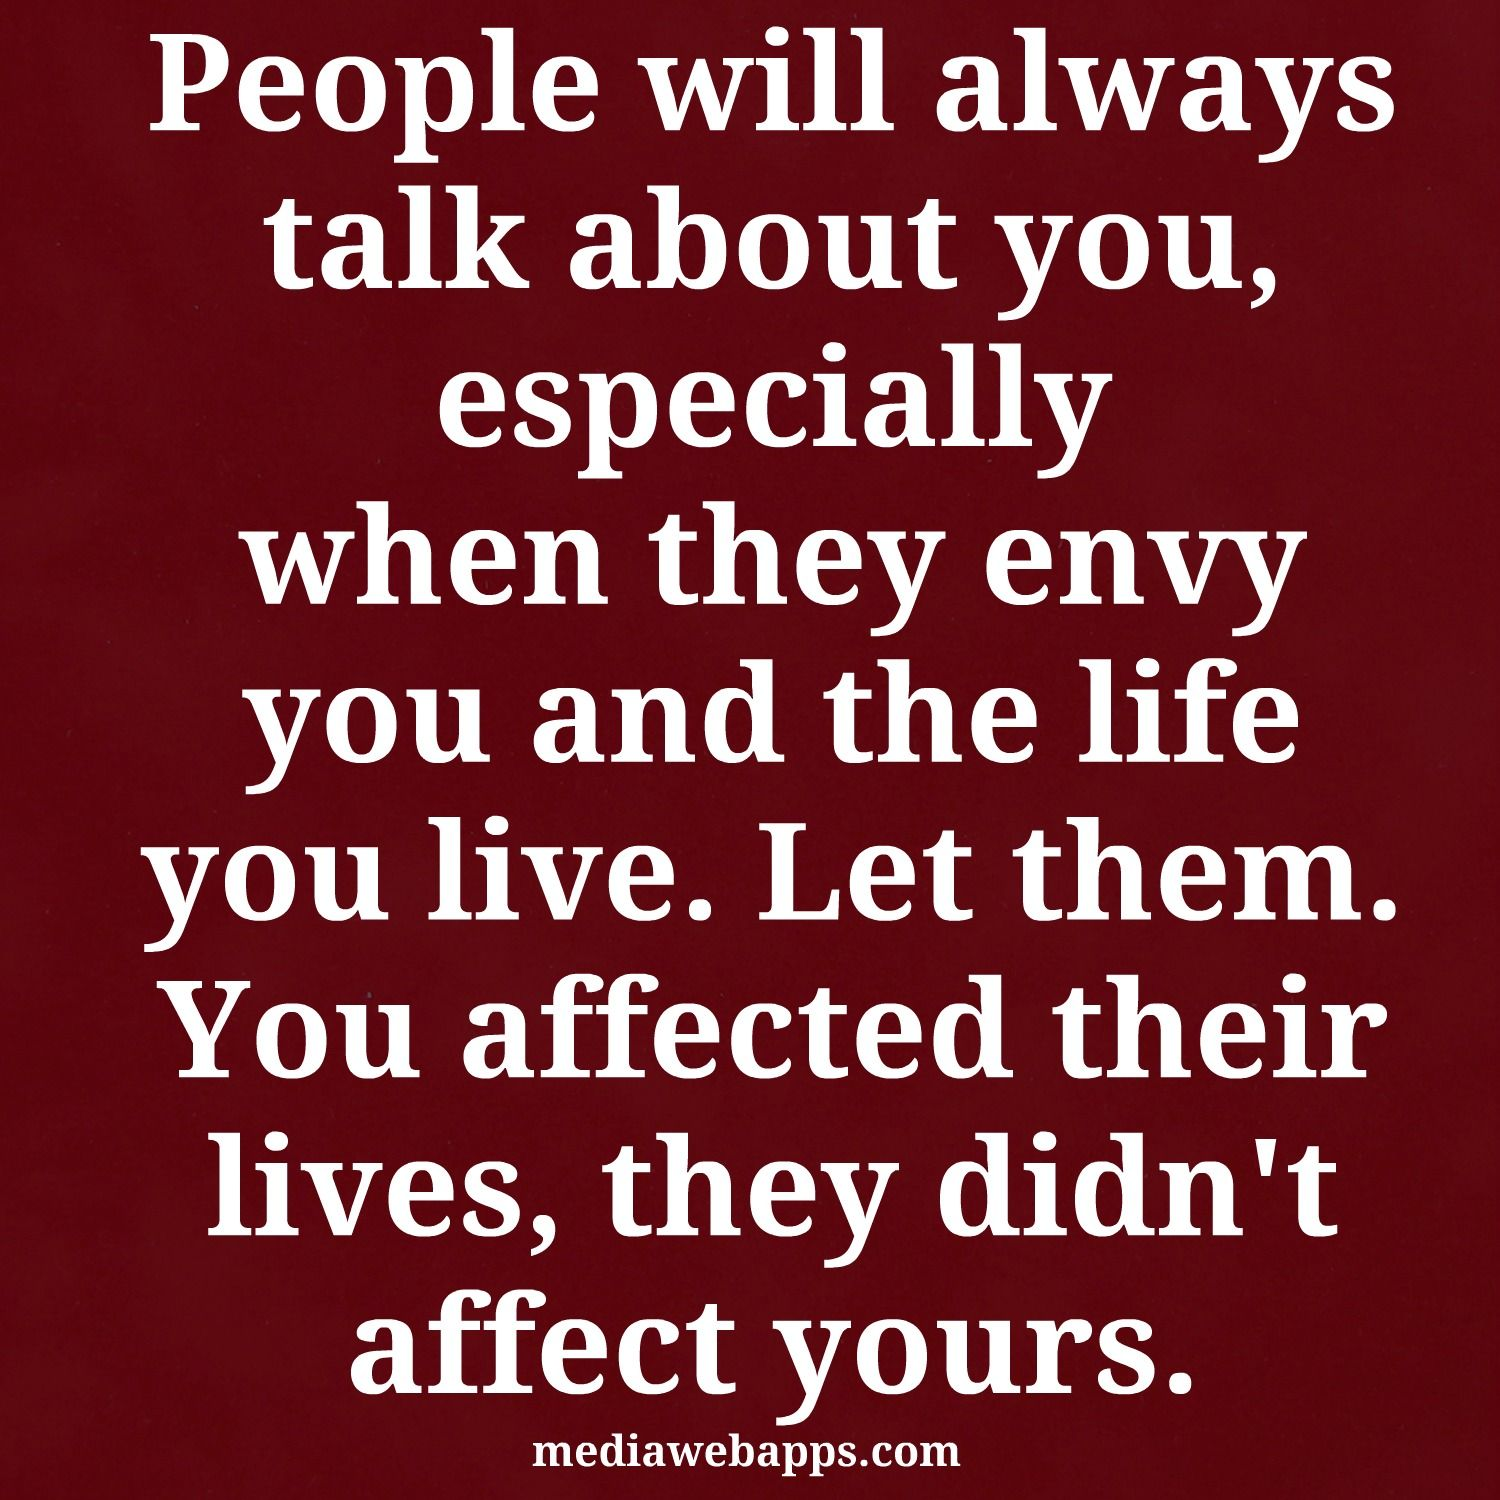 Quotes About People Talking About You People will always talk about you, especially when they envy you  Quotes About People Talking About You